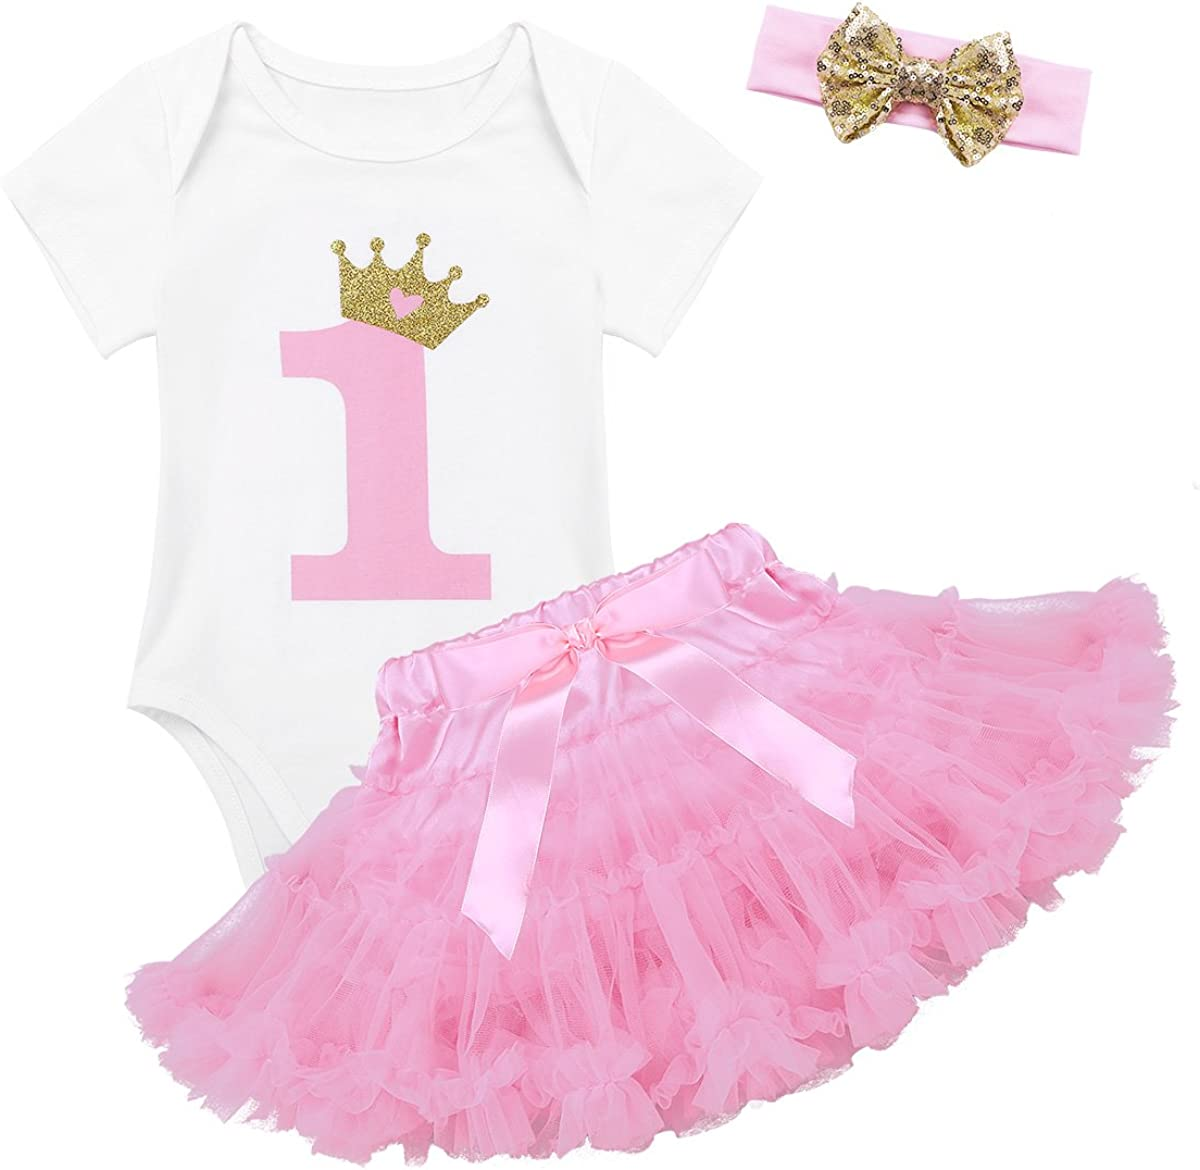 zdhoor Infant Baby Girls 3pcs 1st Birthday Outfits Cake Smash Crown Romper+Tutu Dress+Headband Bodysuit